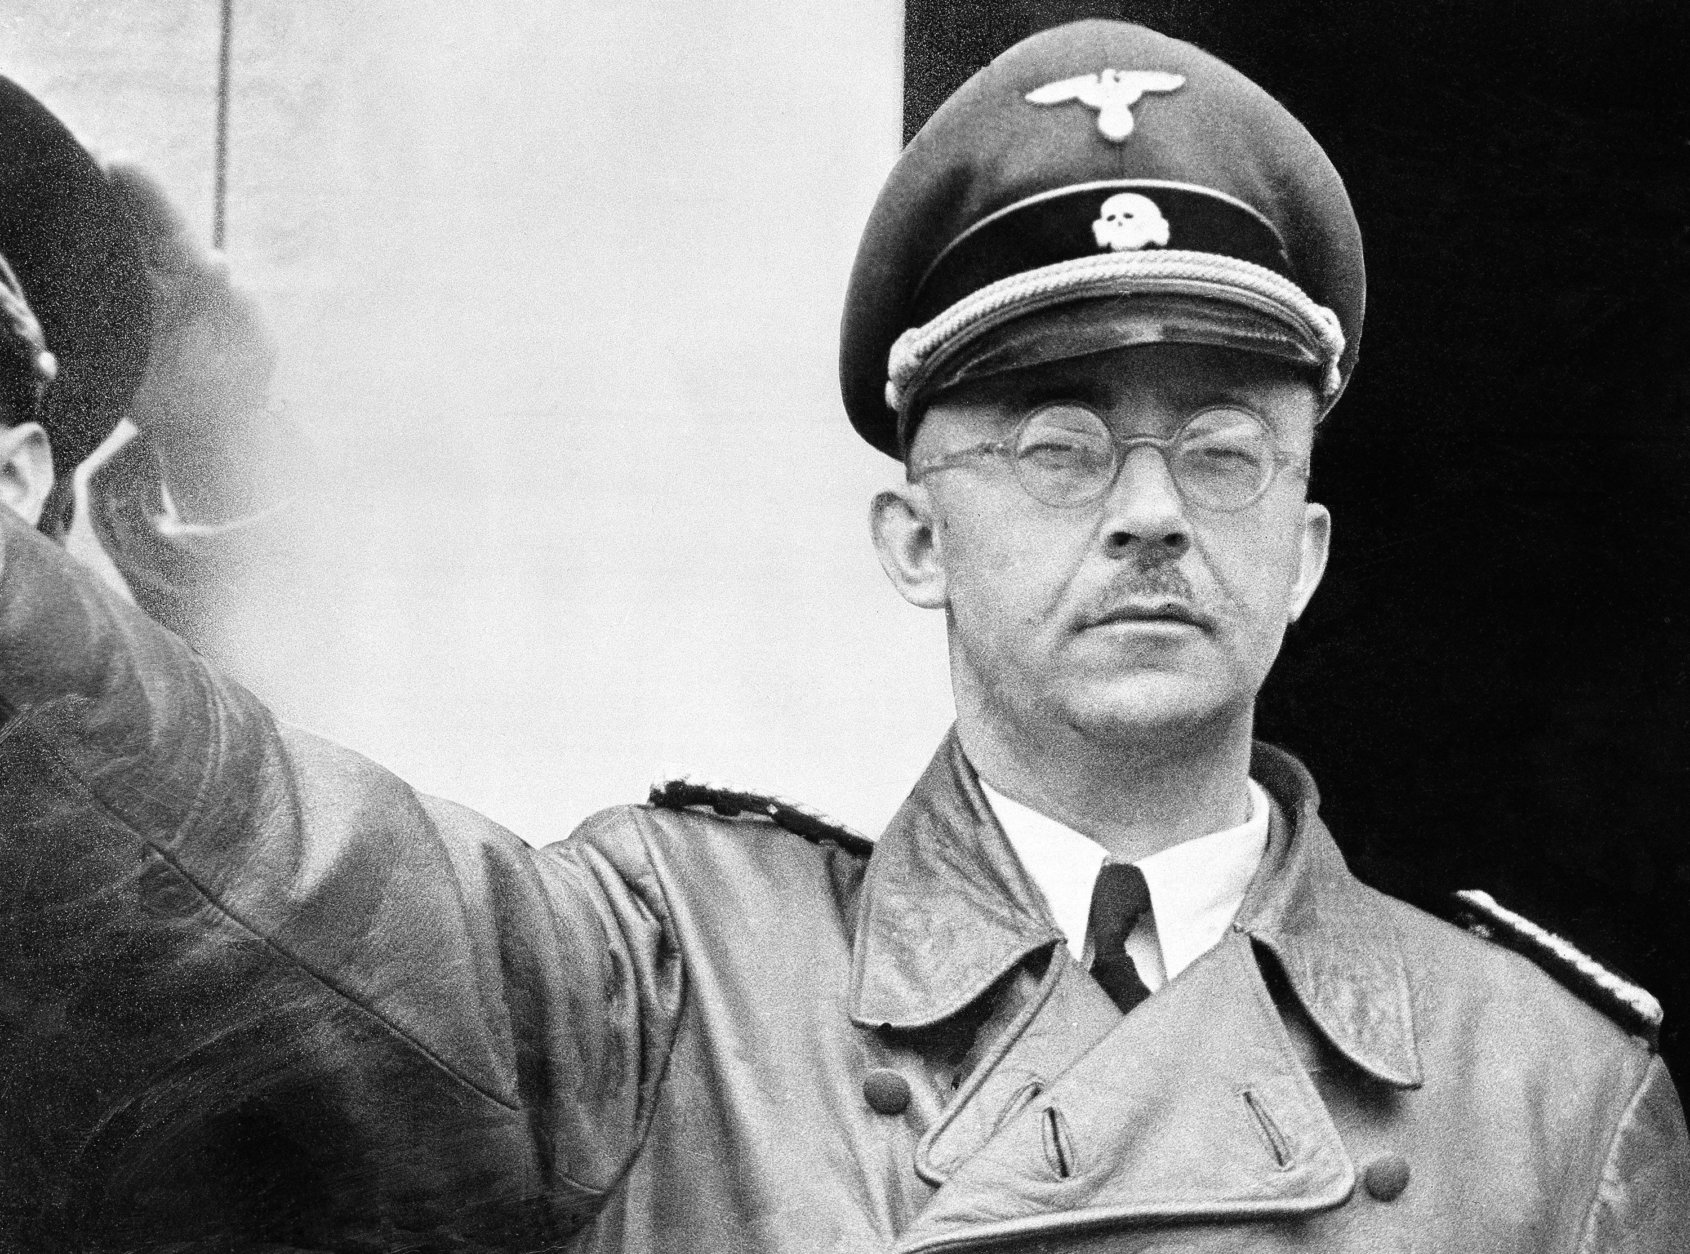 """FILE - The undated file photo shows German Nazi party official and head of the SS, Heinrich Himmler. at unknown location in Germany. German newspaper Welt am Sonntag has published a trove of letters believed to be written by Nazi SS leader Heinrich Himmler. On seven full pages the paper on Sunday Jan. 26,2014  showed pictures of Himmler and his family smiling into the camera during a fishing trip, the top Nazi taking a bath in a lake or feeding a little fawn. The newspaper, which says the material is contained in an eight-part series it plans to publish, also quotes excerpts from Himmler's love letters addressing his wife as """"my sweet, beloved little woman."""" Welt said it worked together with Israeli film director Vanessa Lapa, whose family had the documents in its possession.  (AP Photo/str/file)"""